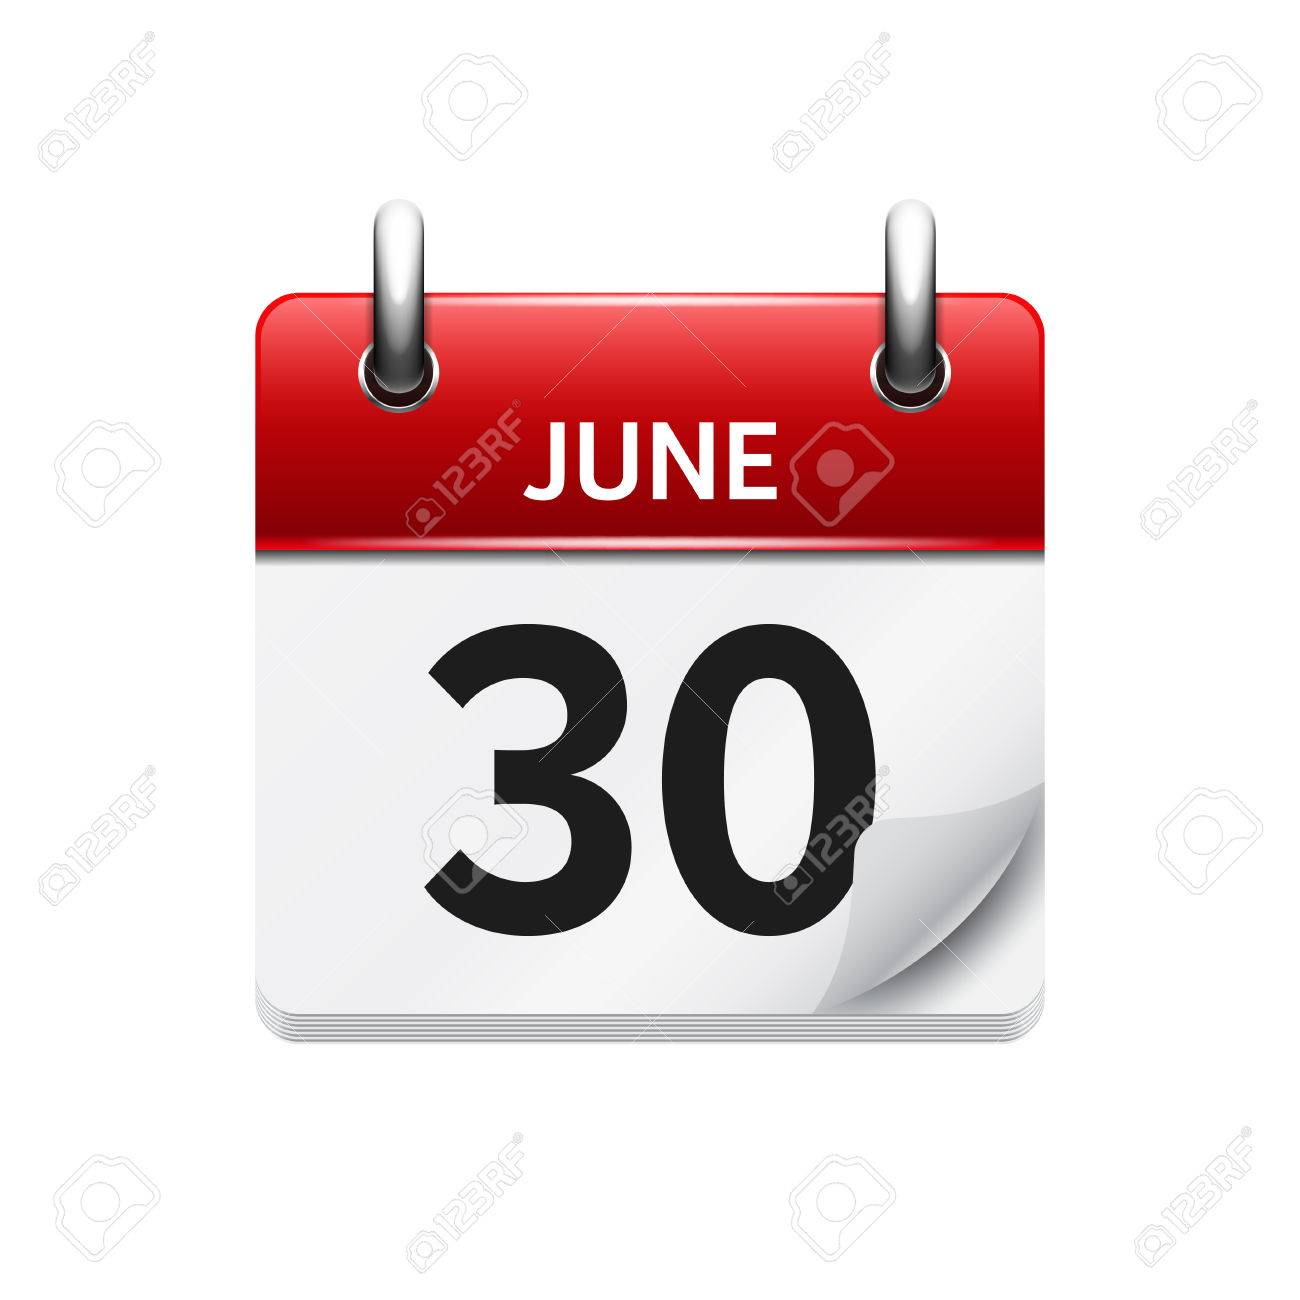 June 30 . Vector flat daily calendar icon. Date and time, day, month. Holiday. - 54055890